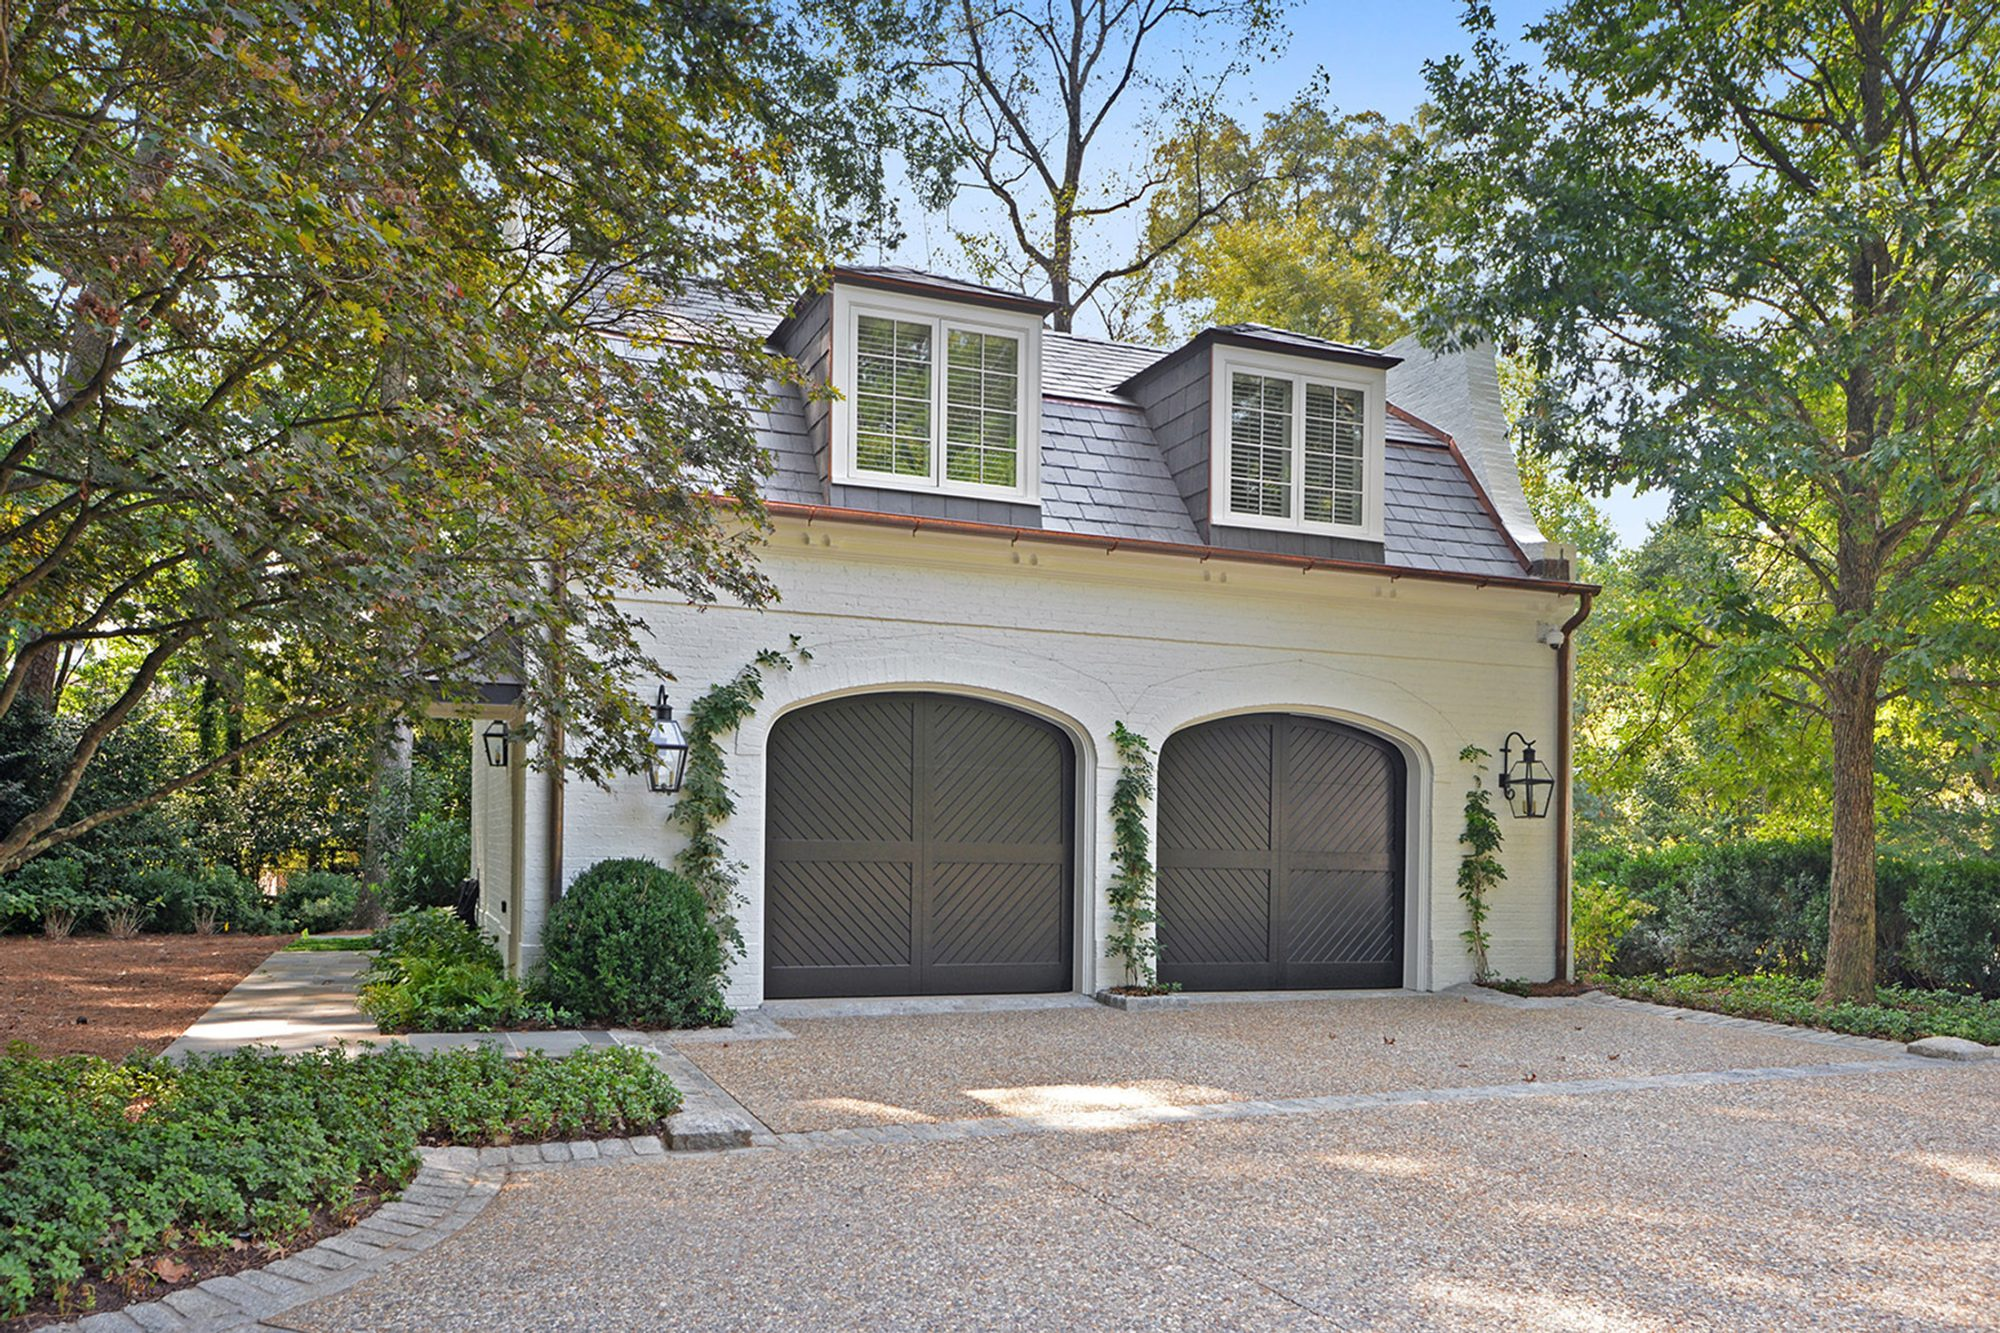 Painted white brick detached garage with black doors.